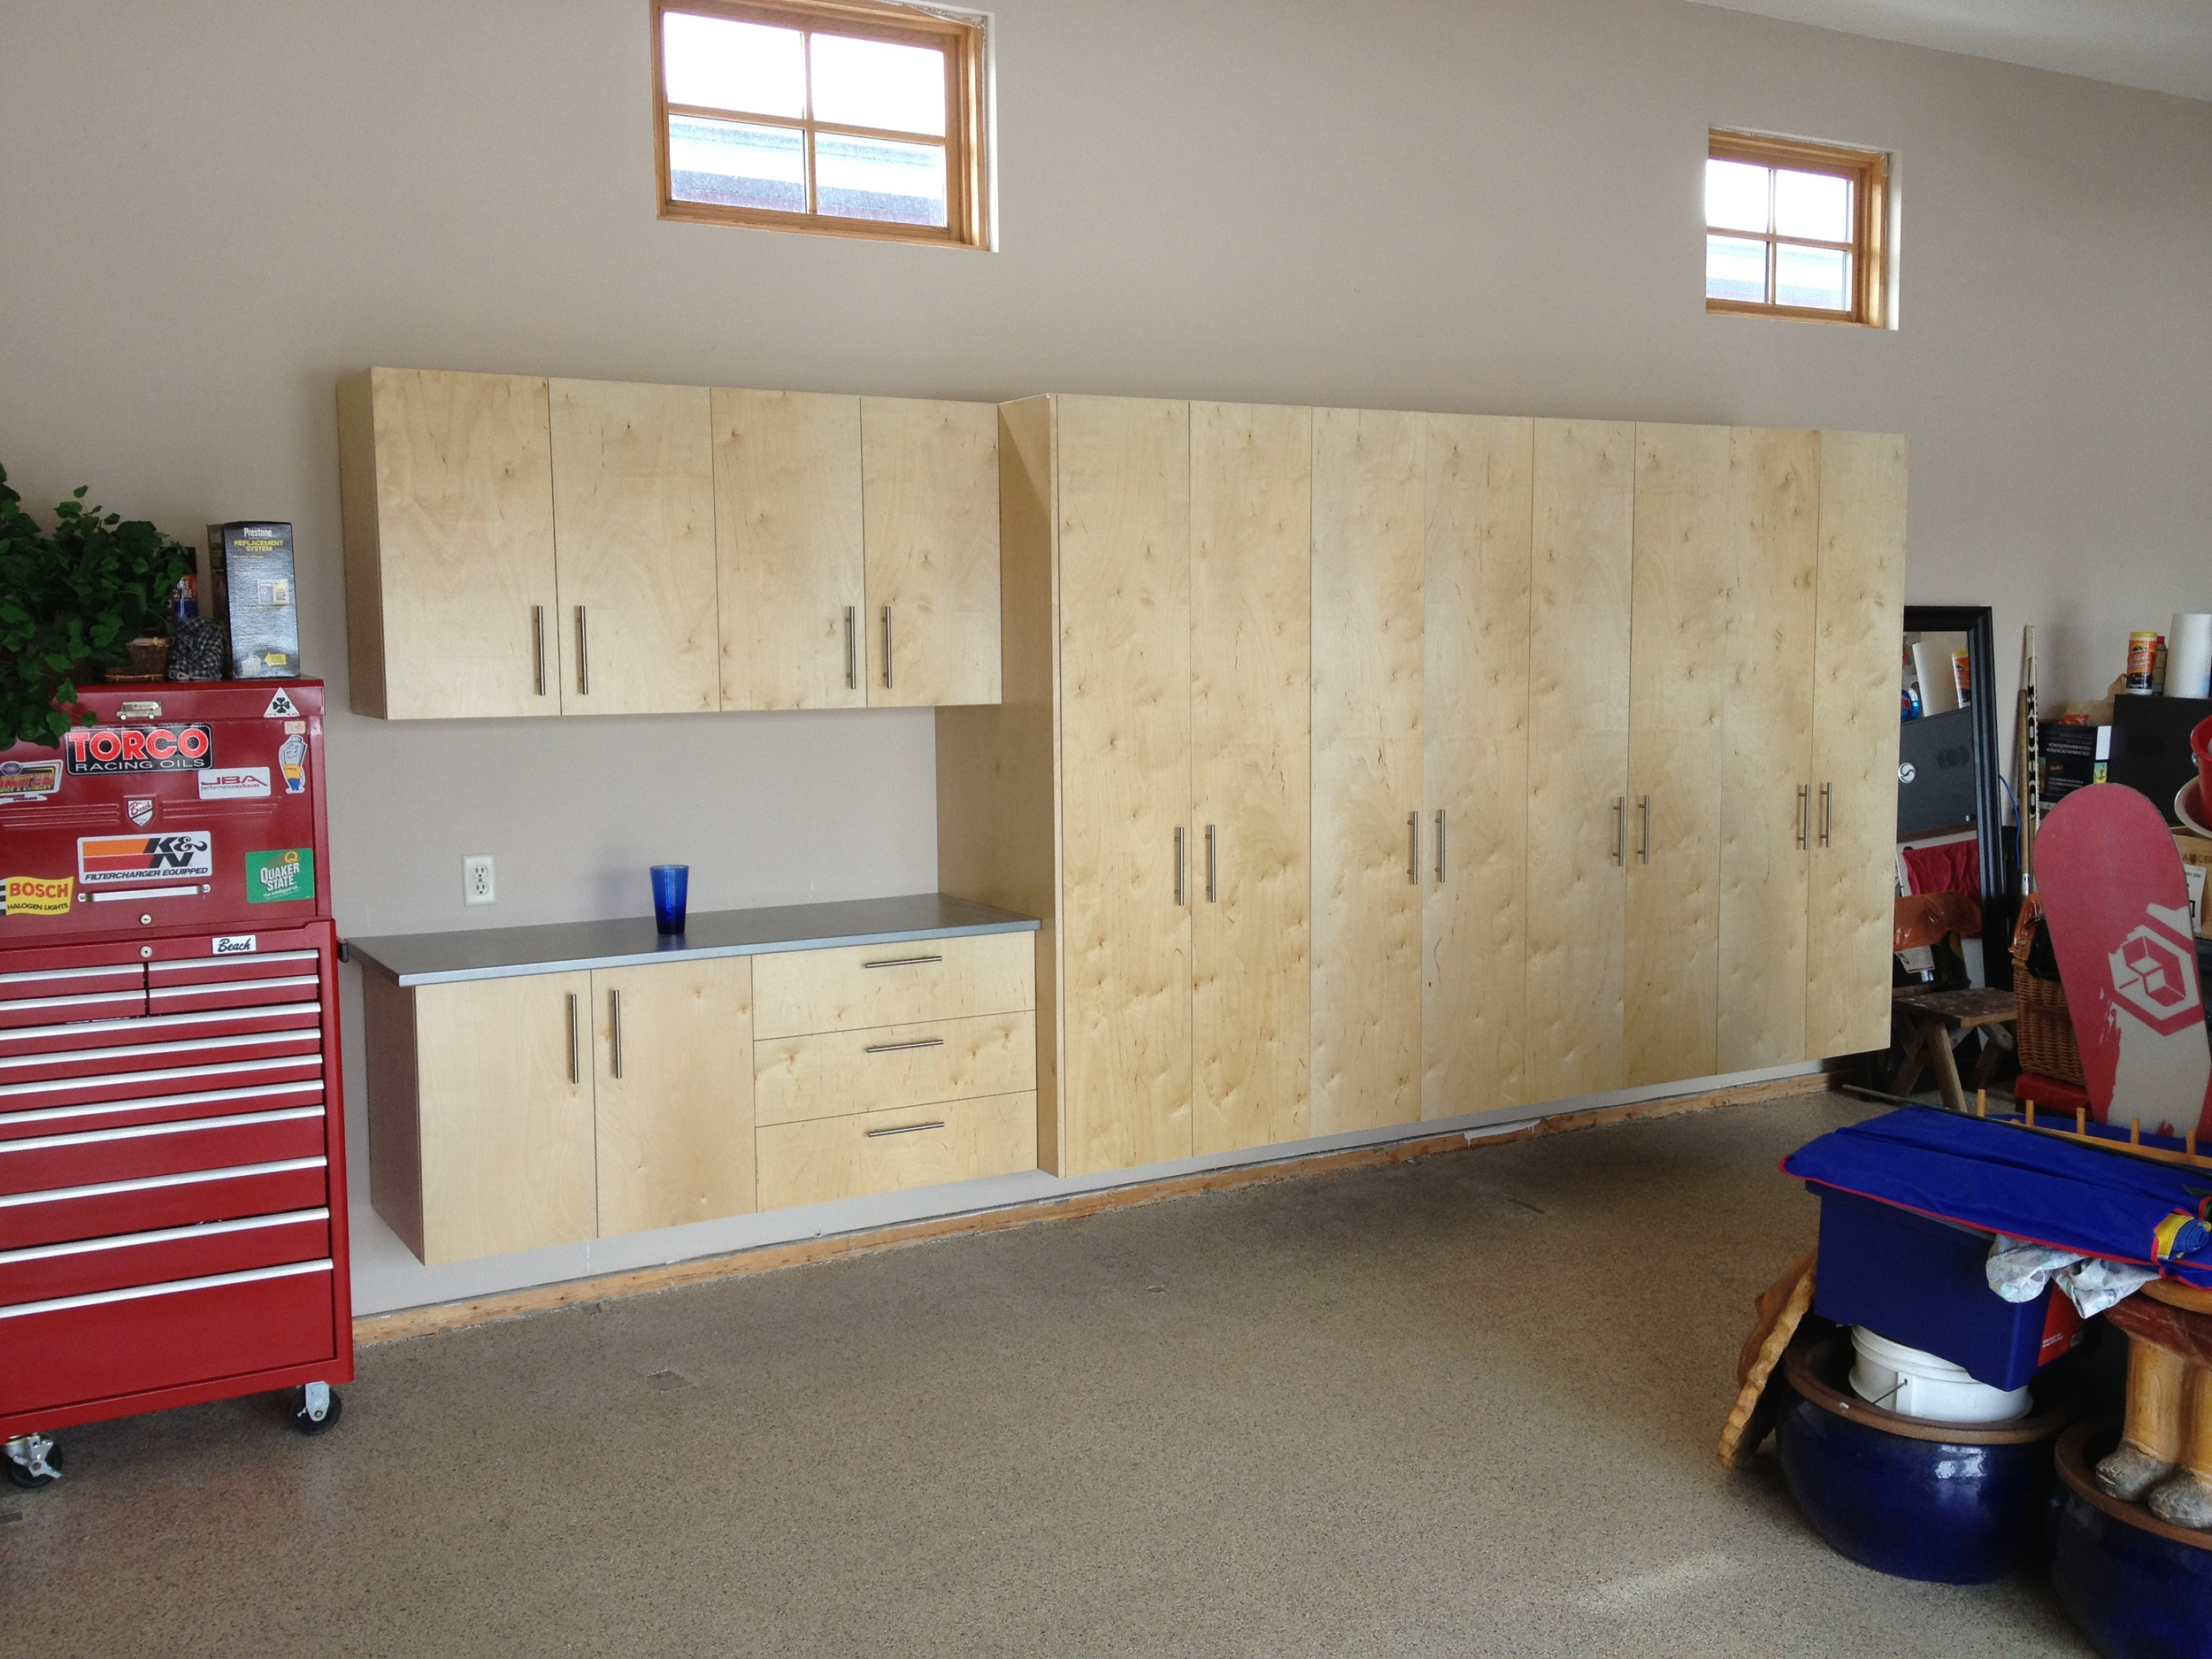 14 feet of cabinets